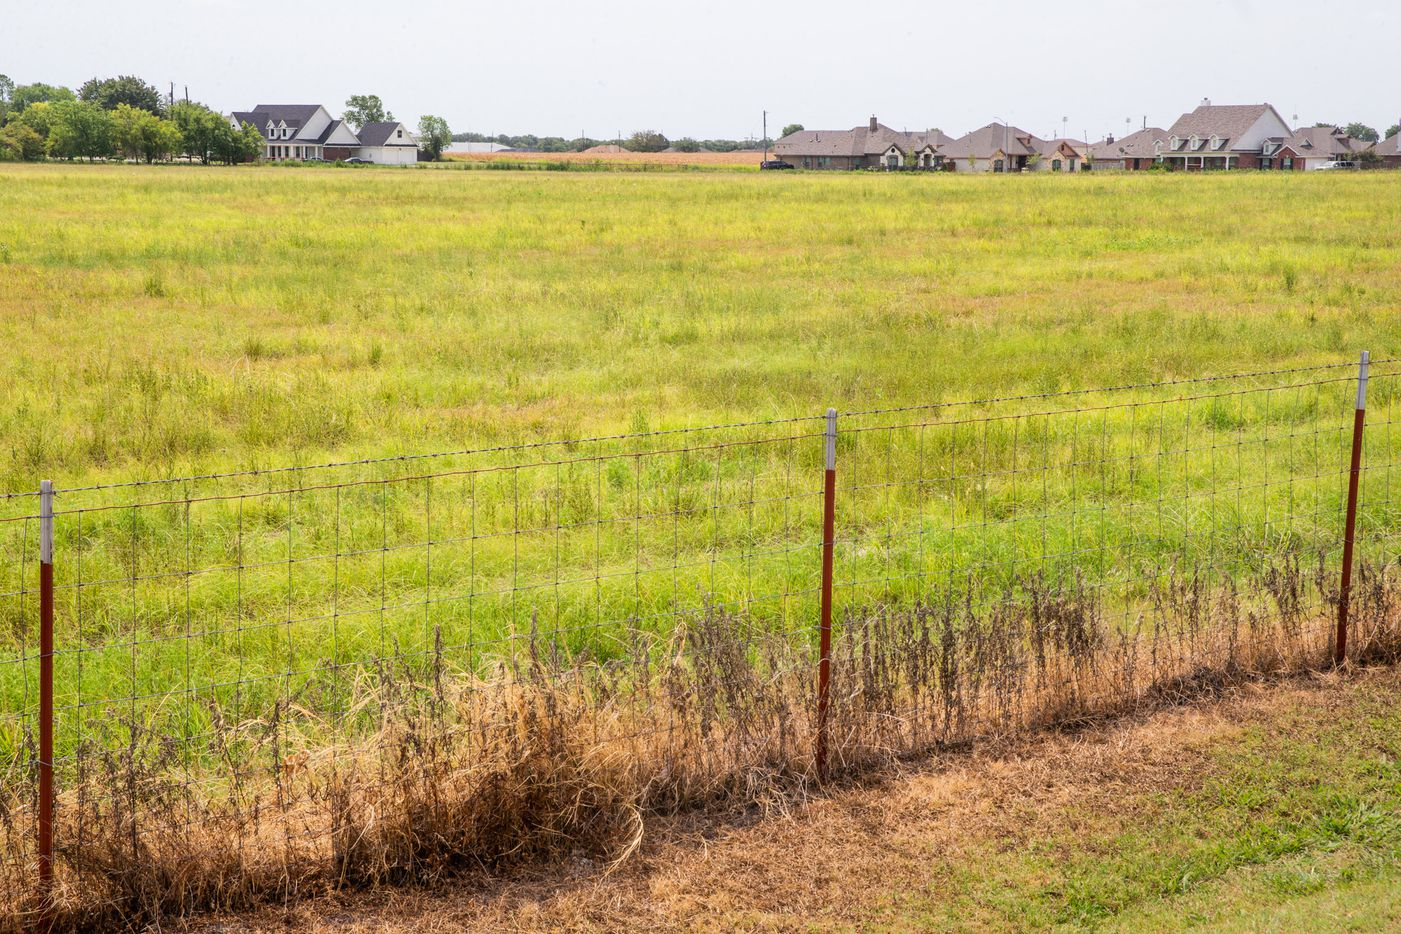 The 5,200-acre Woodstone residential development is planned to be built along Interstate 45 in the north Ellis County town of Ferris, and could bring thousands of new homes to the area.